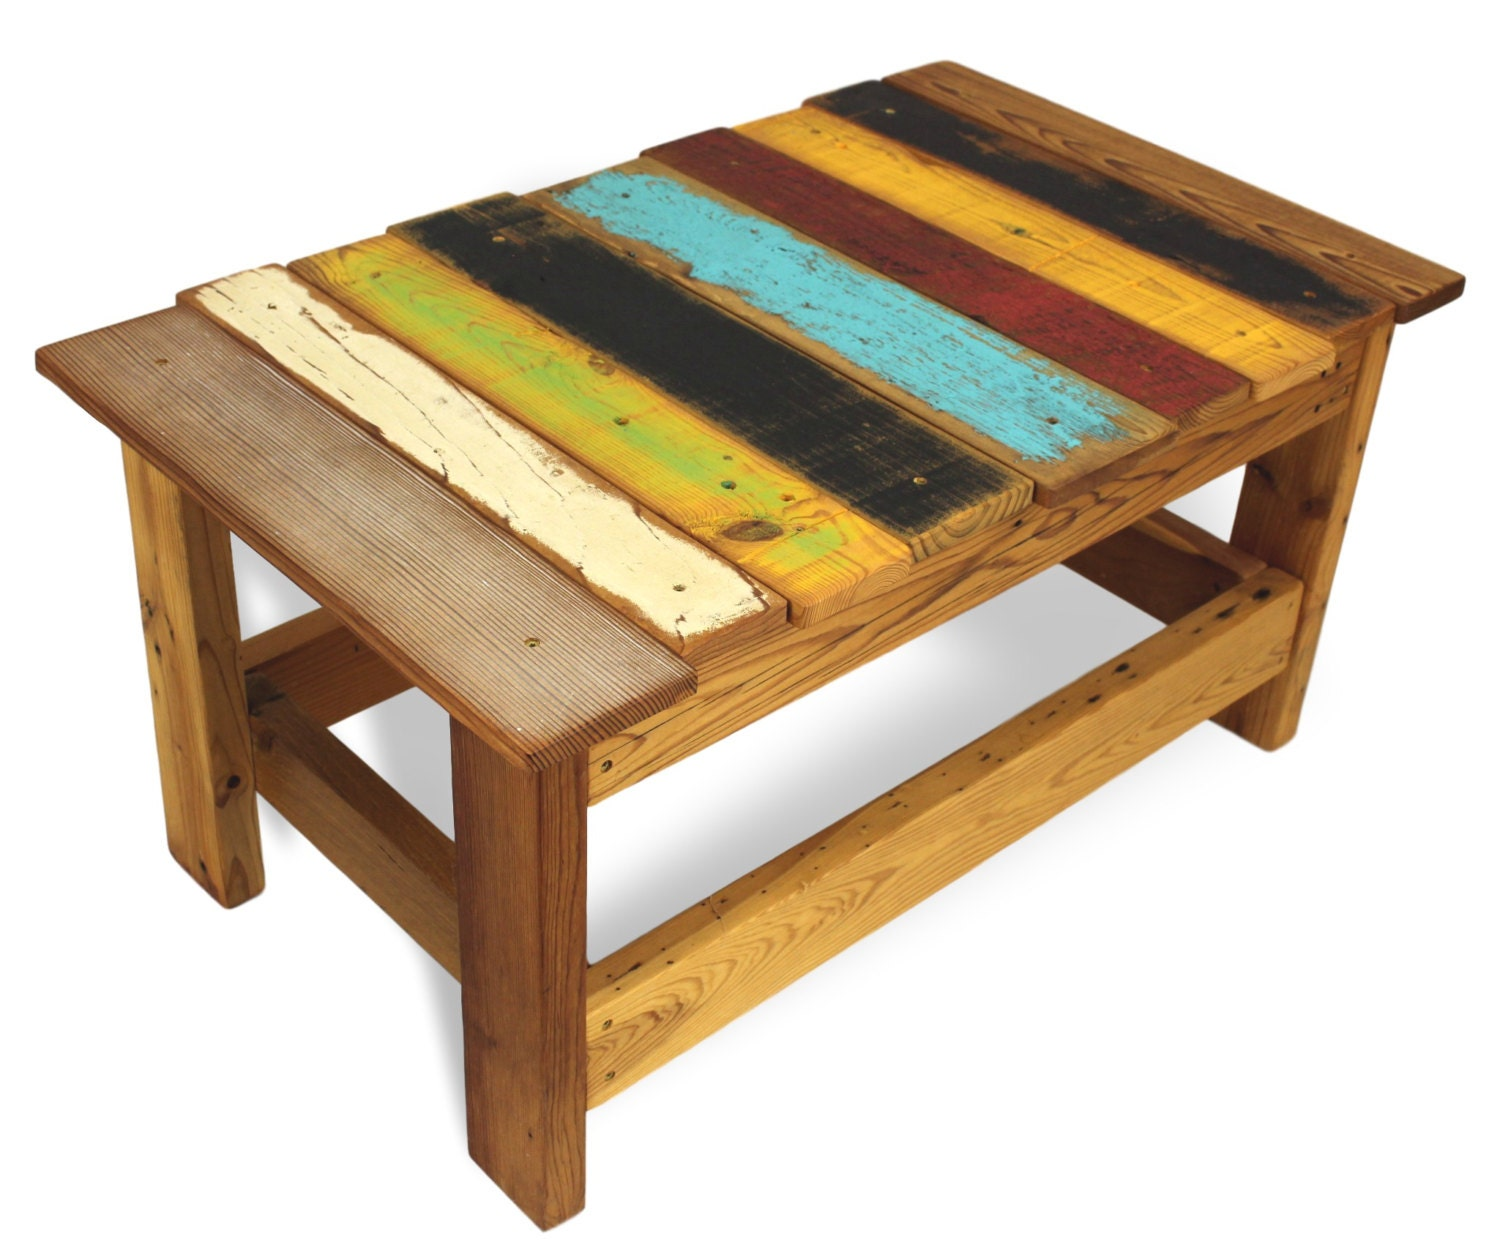 Make A Reclaimed Wood Coffee Table: Reclaimed Wood Coffee Table Rustic Coffee Table Reclaimed Wood